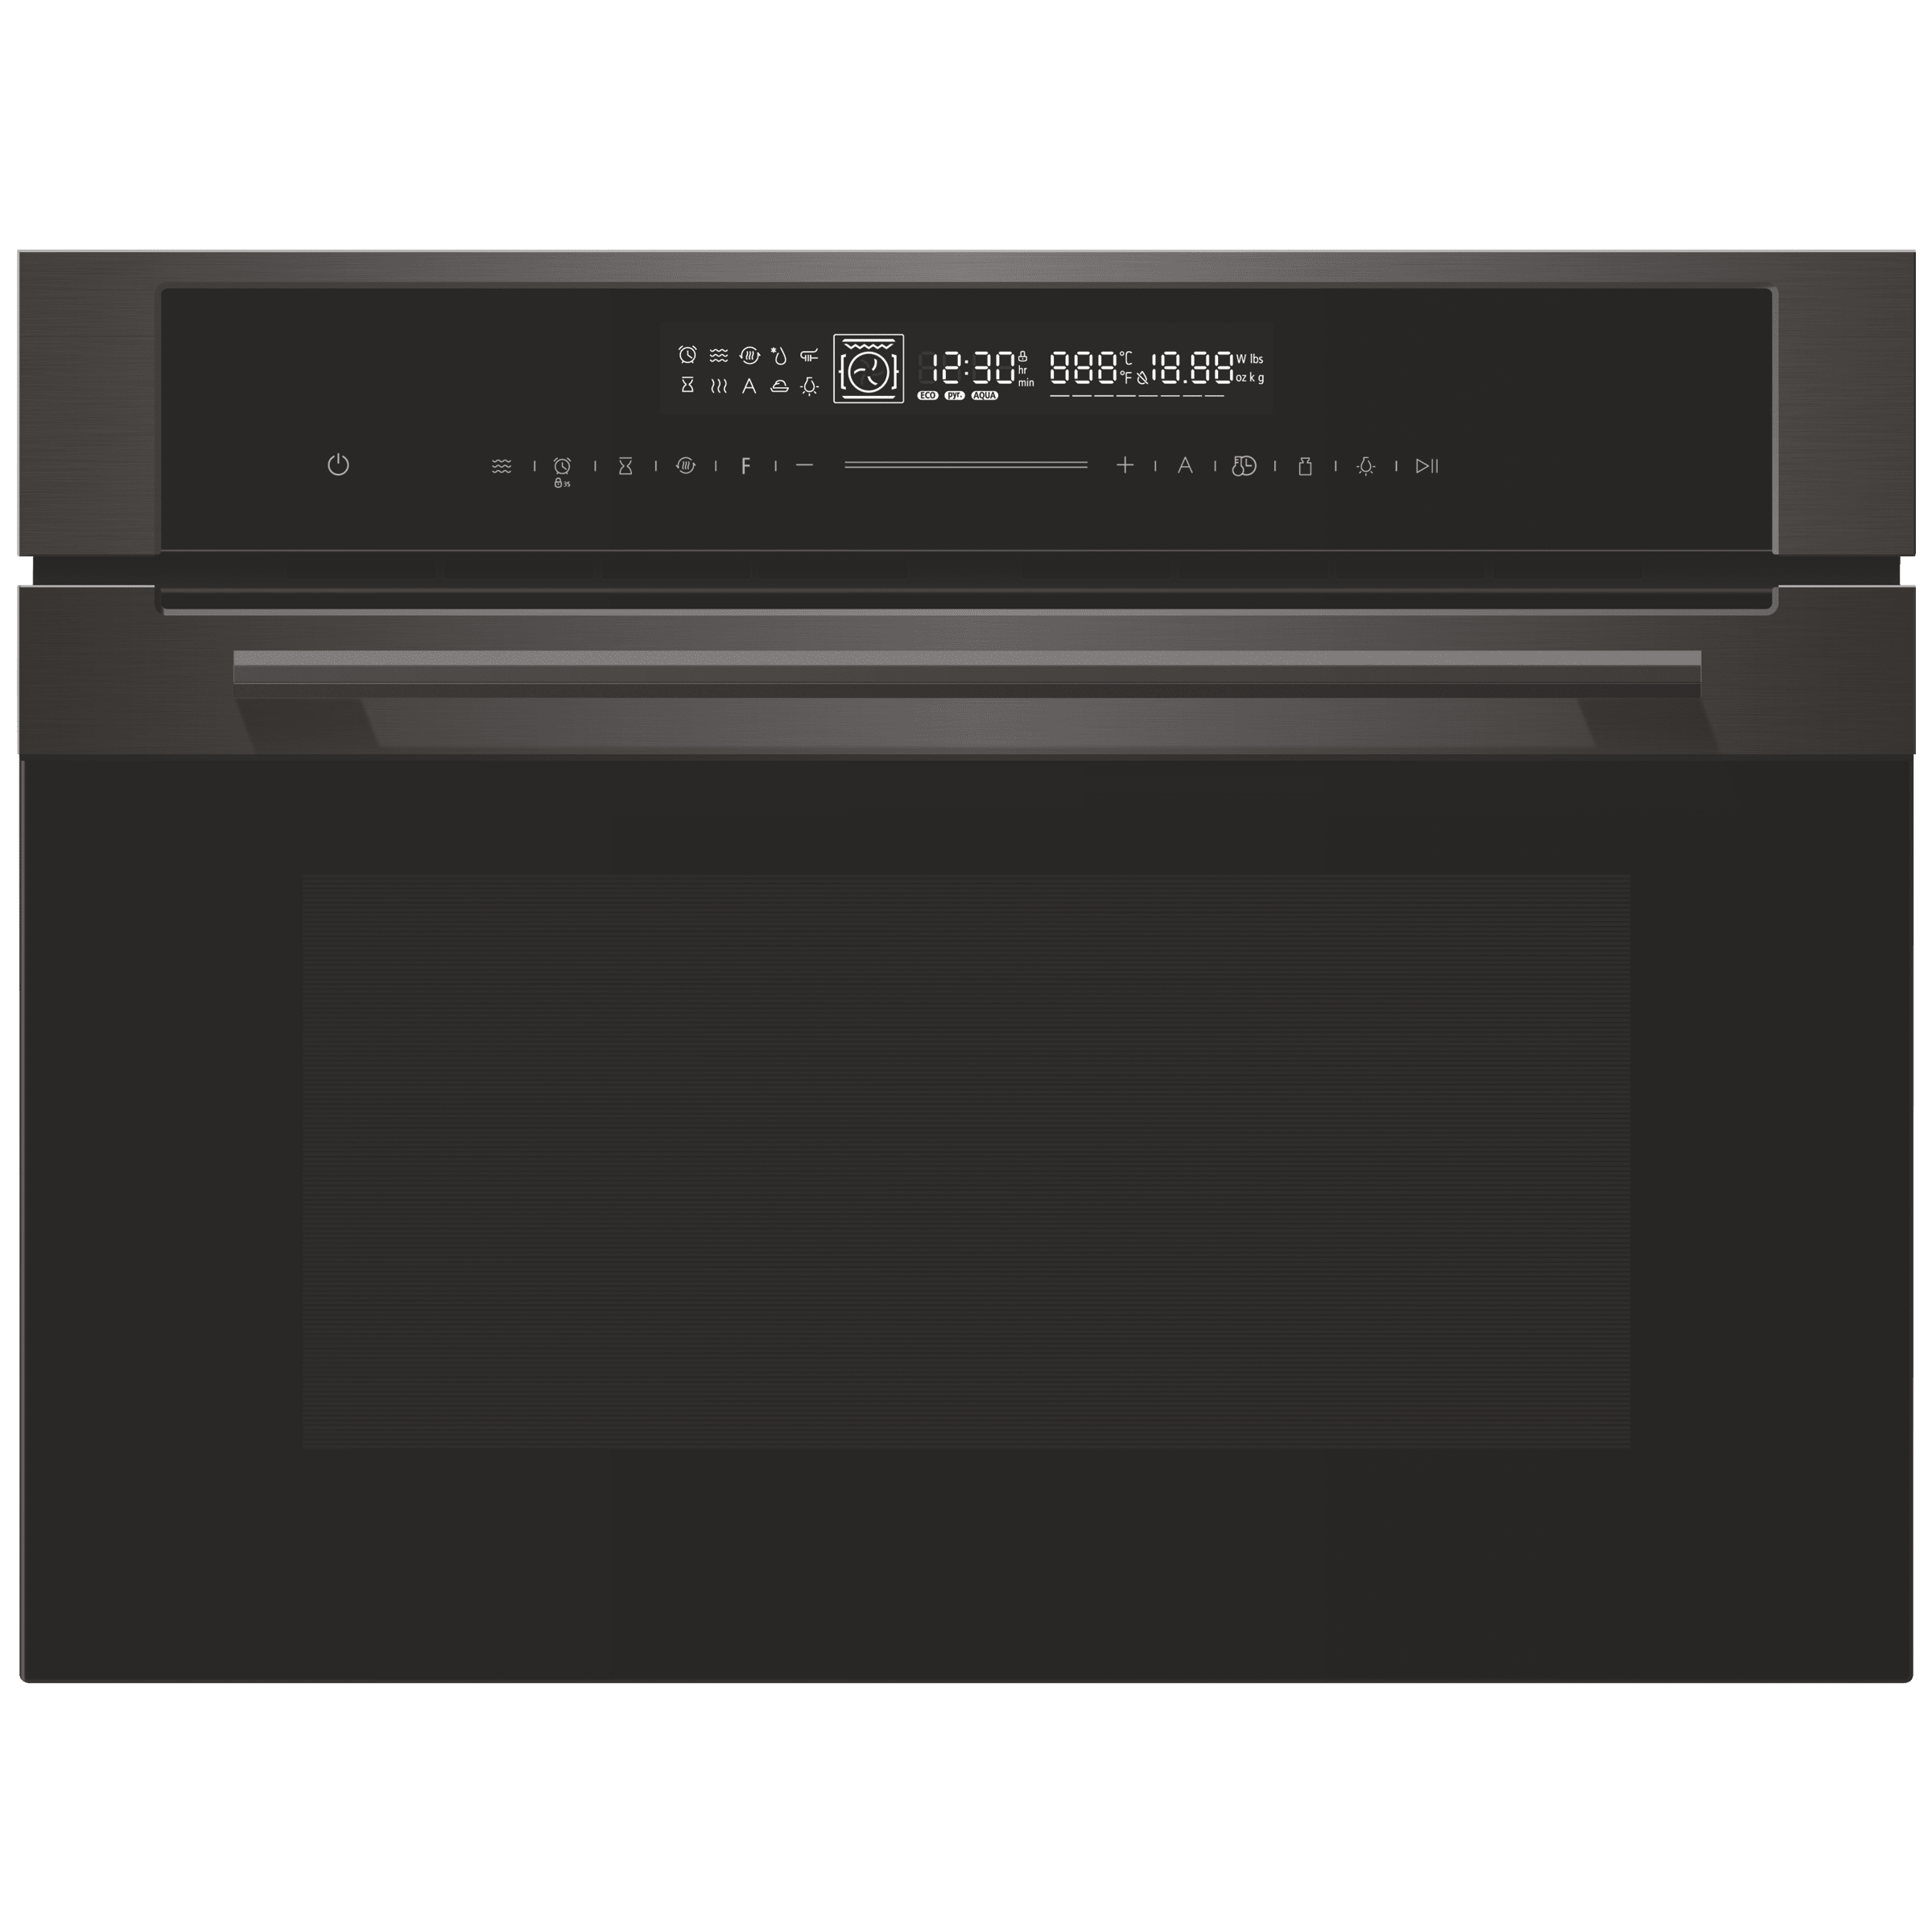 Elica EPBI Combo 50 Litres Built-in Oven (9 Cooking Modes, Black)